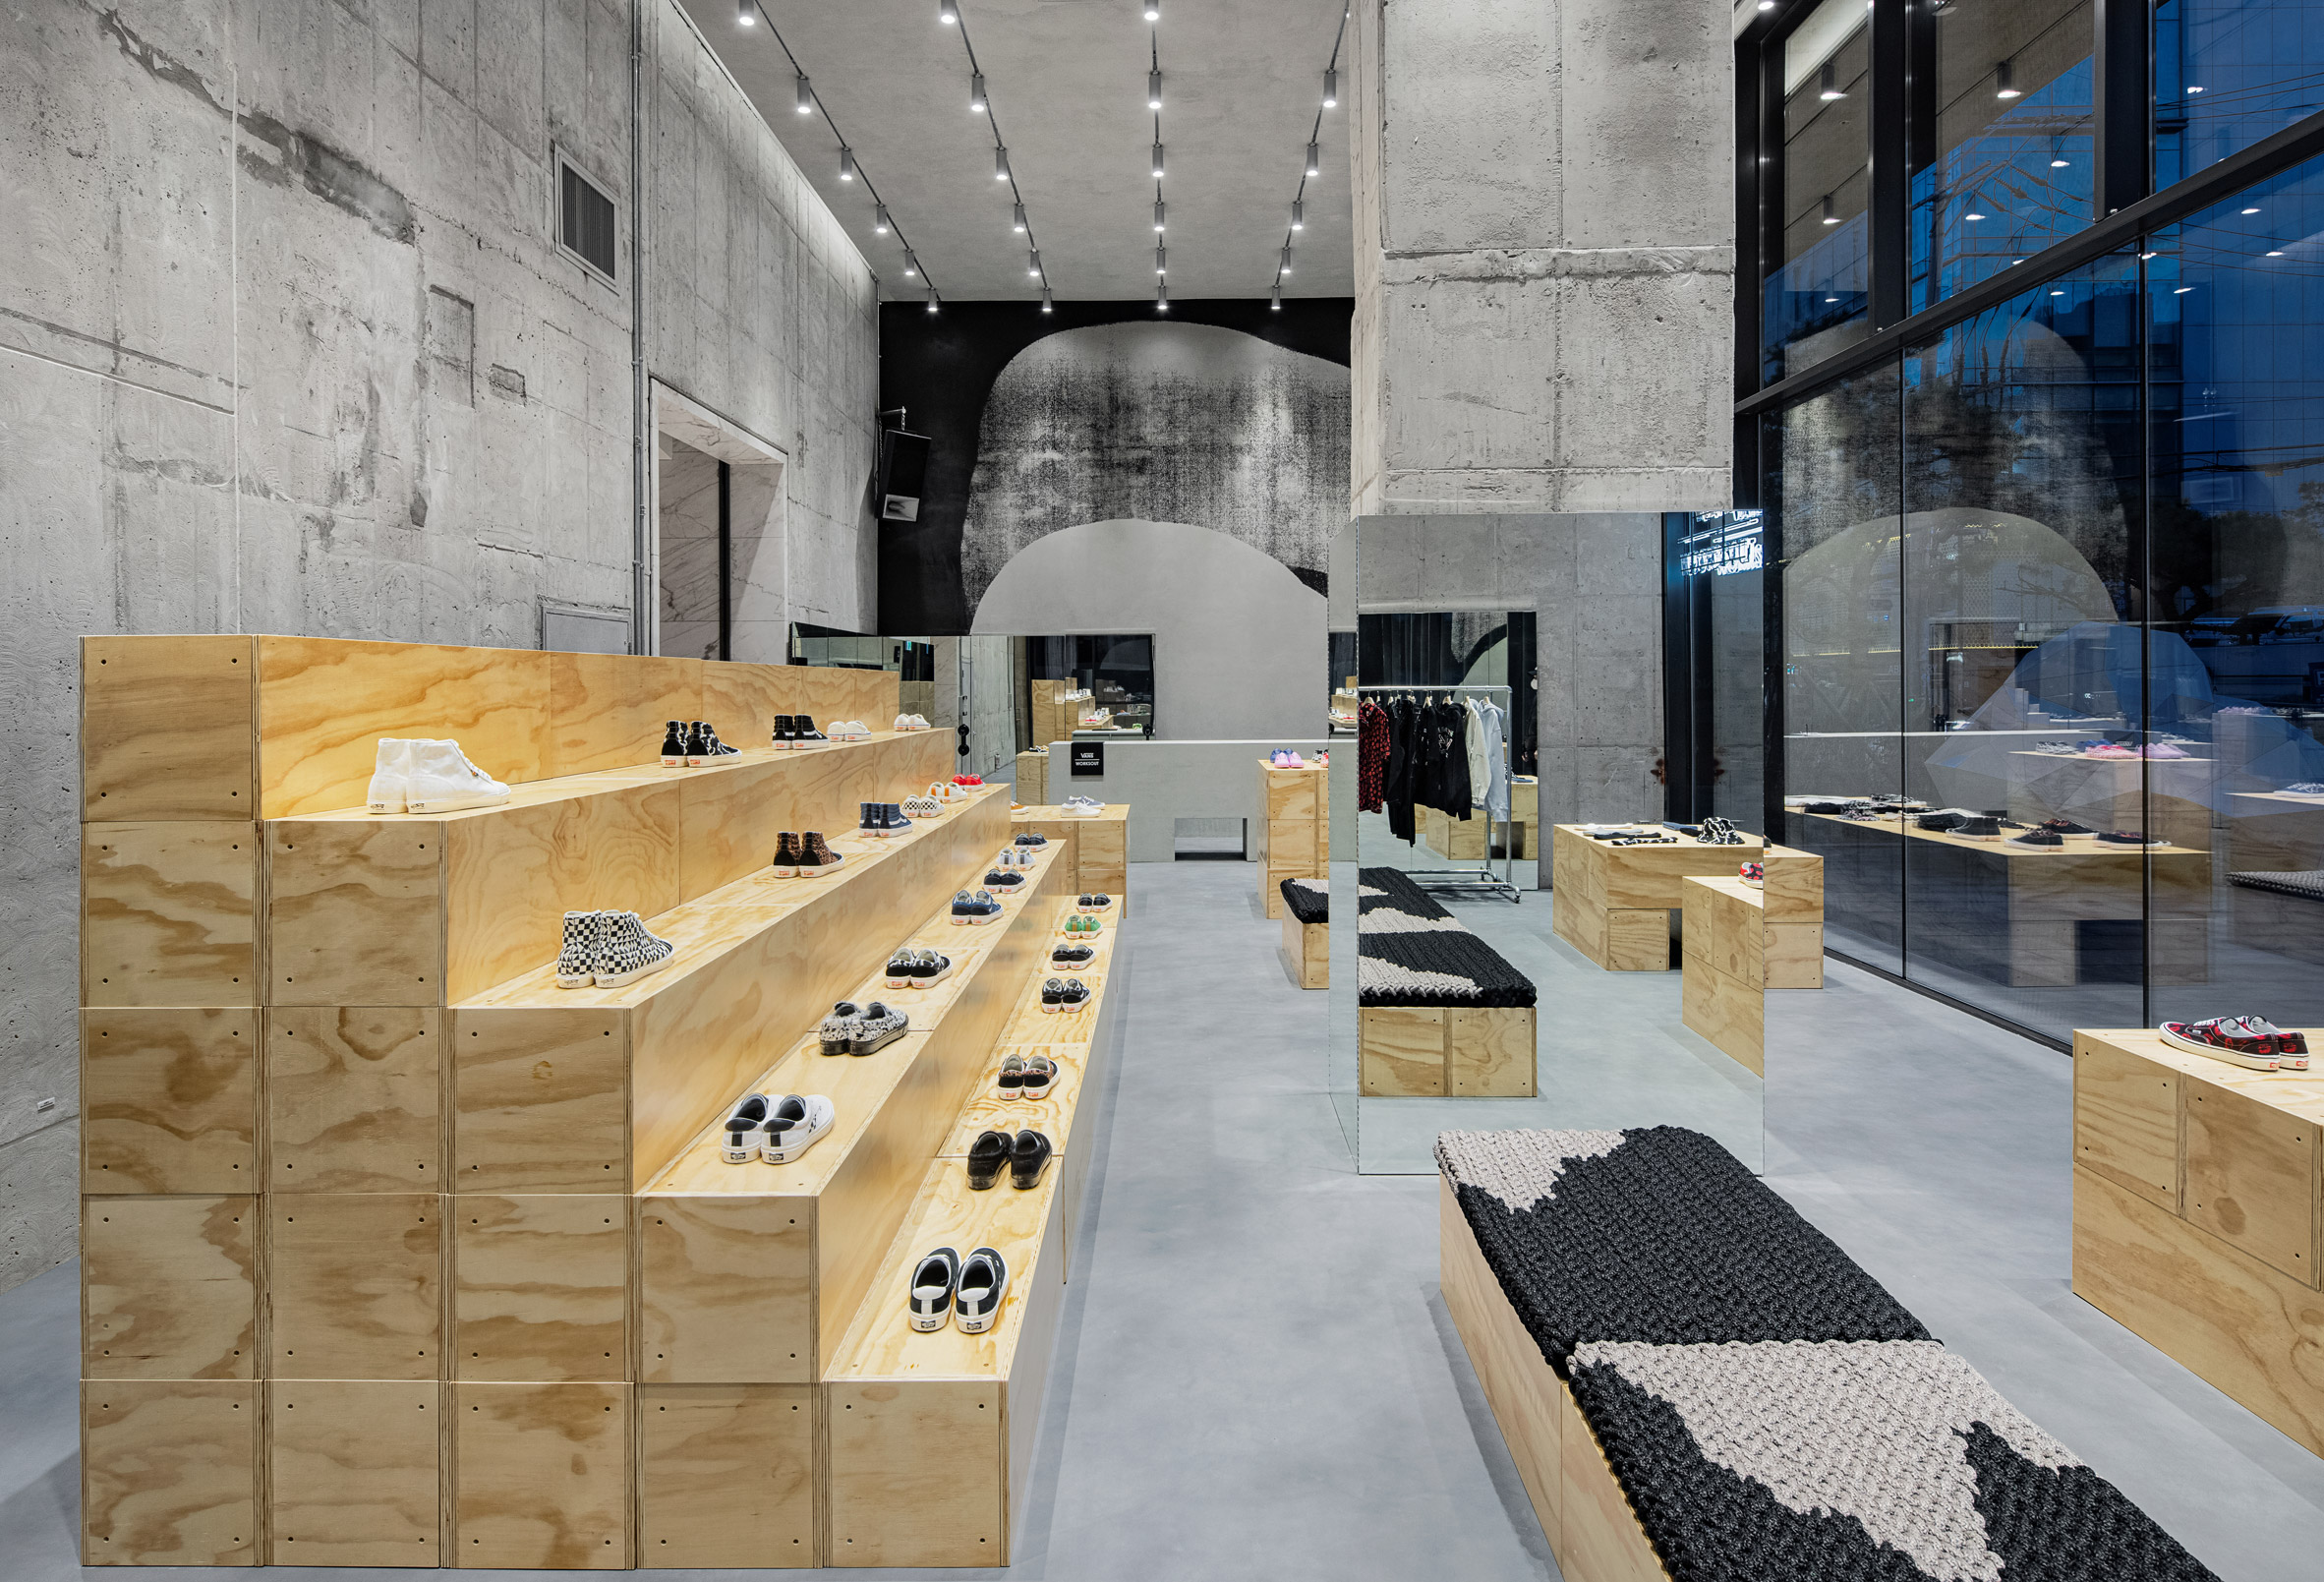 Concrete walls and ceiling in clothing store